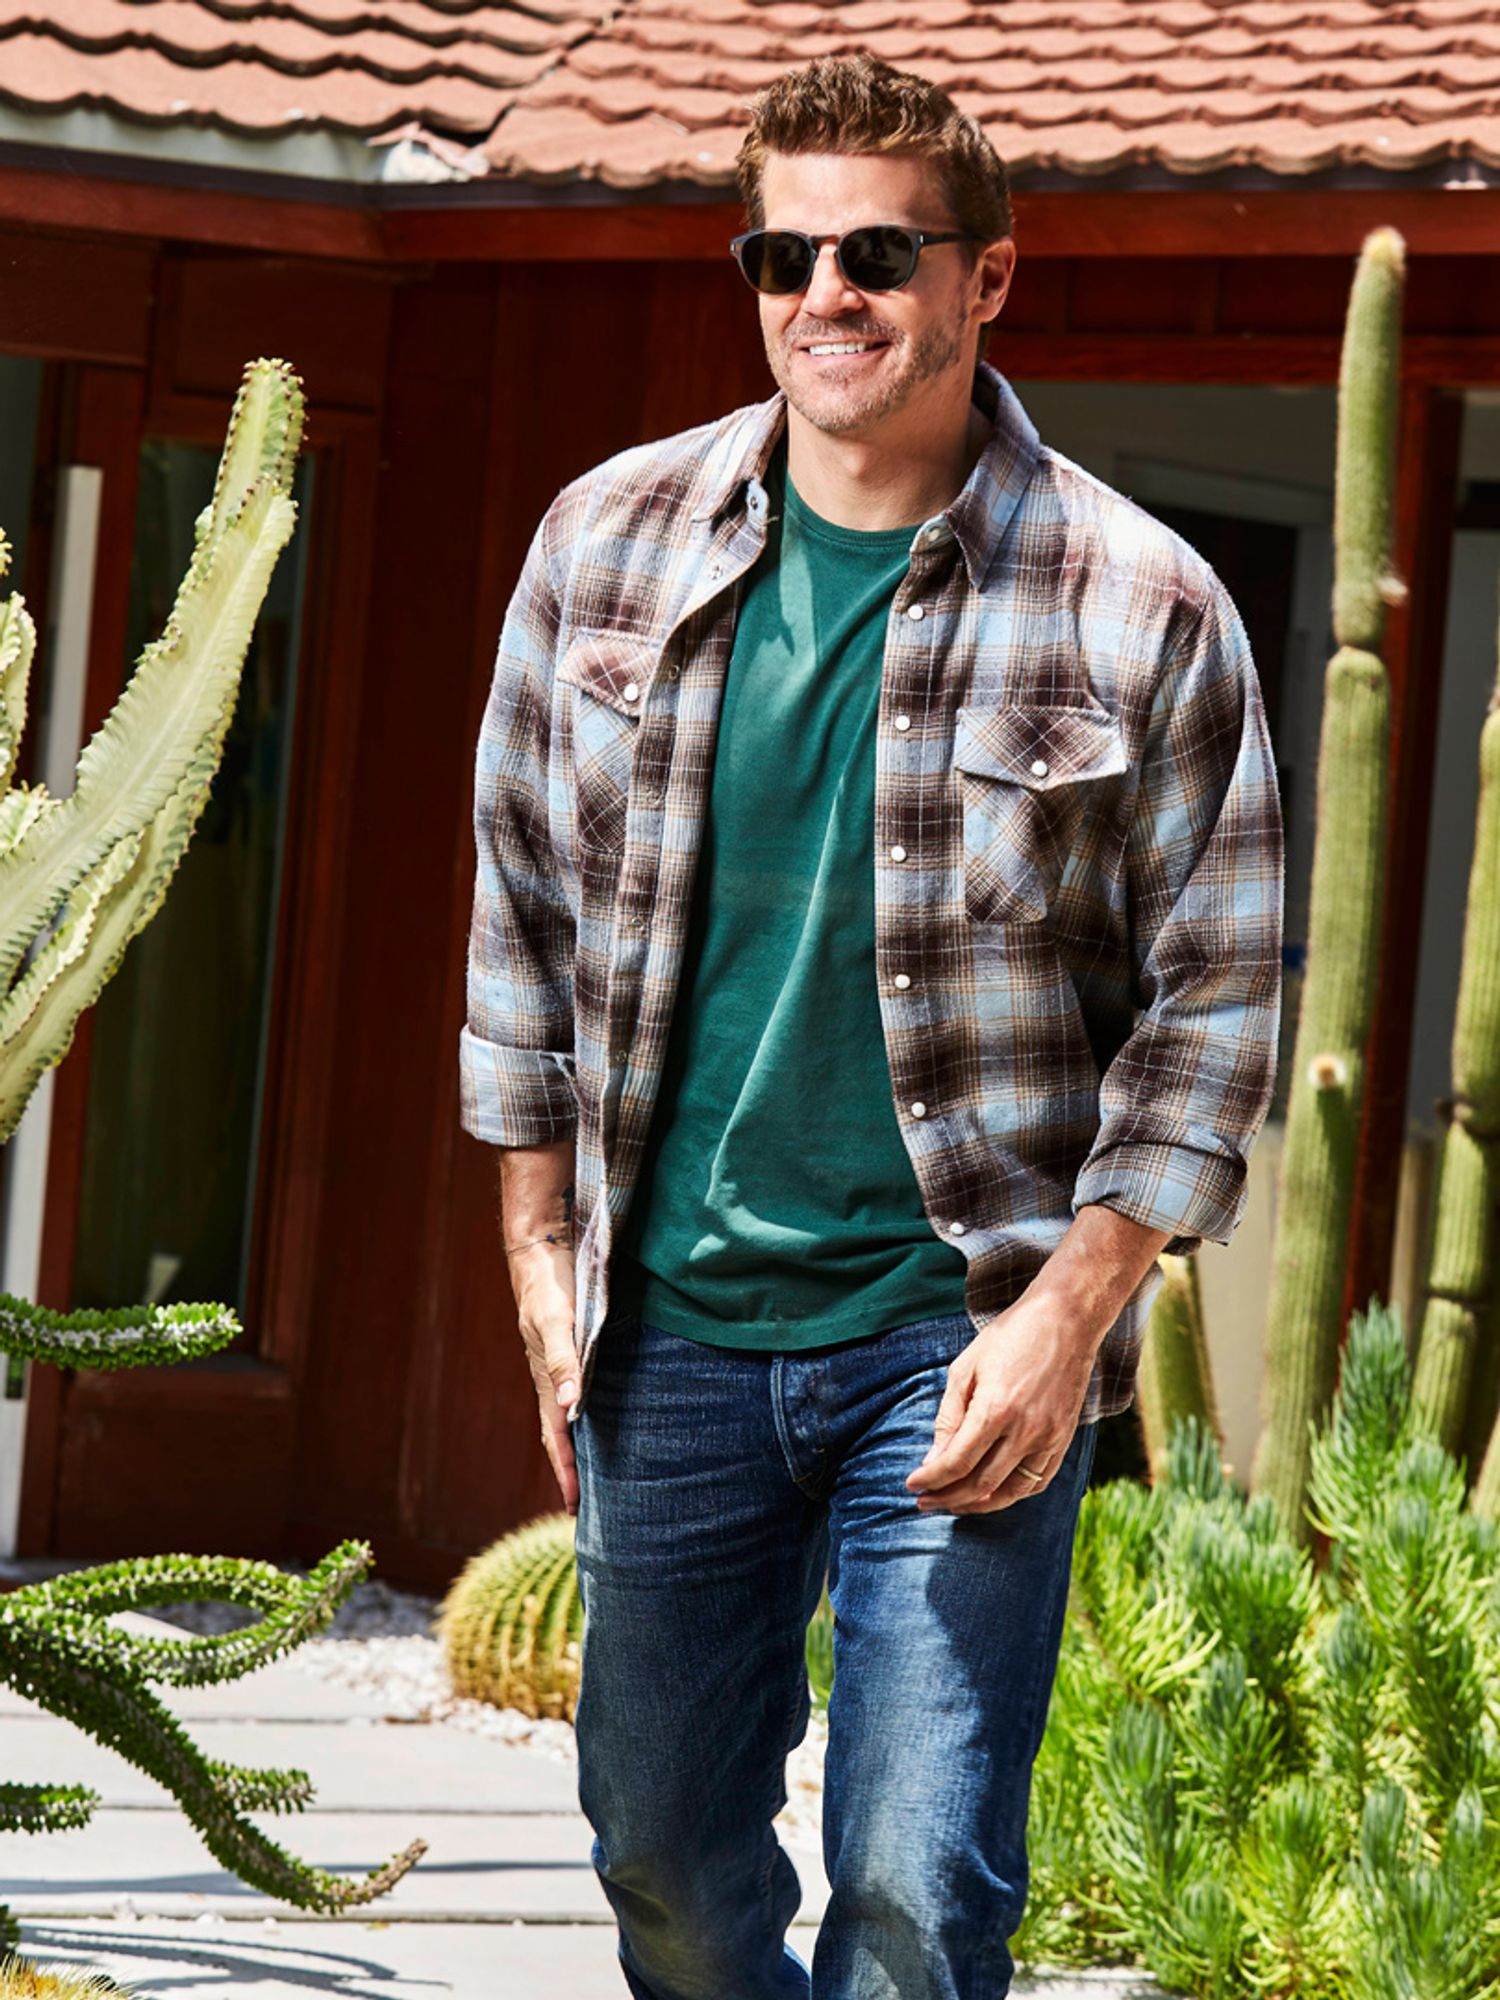 David Boreanaz of SEAL Team in a plaid shirt and jeans